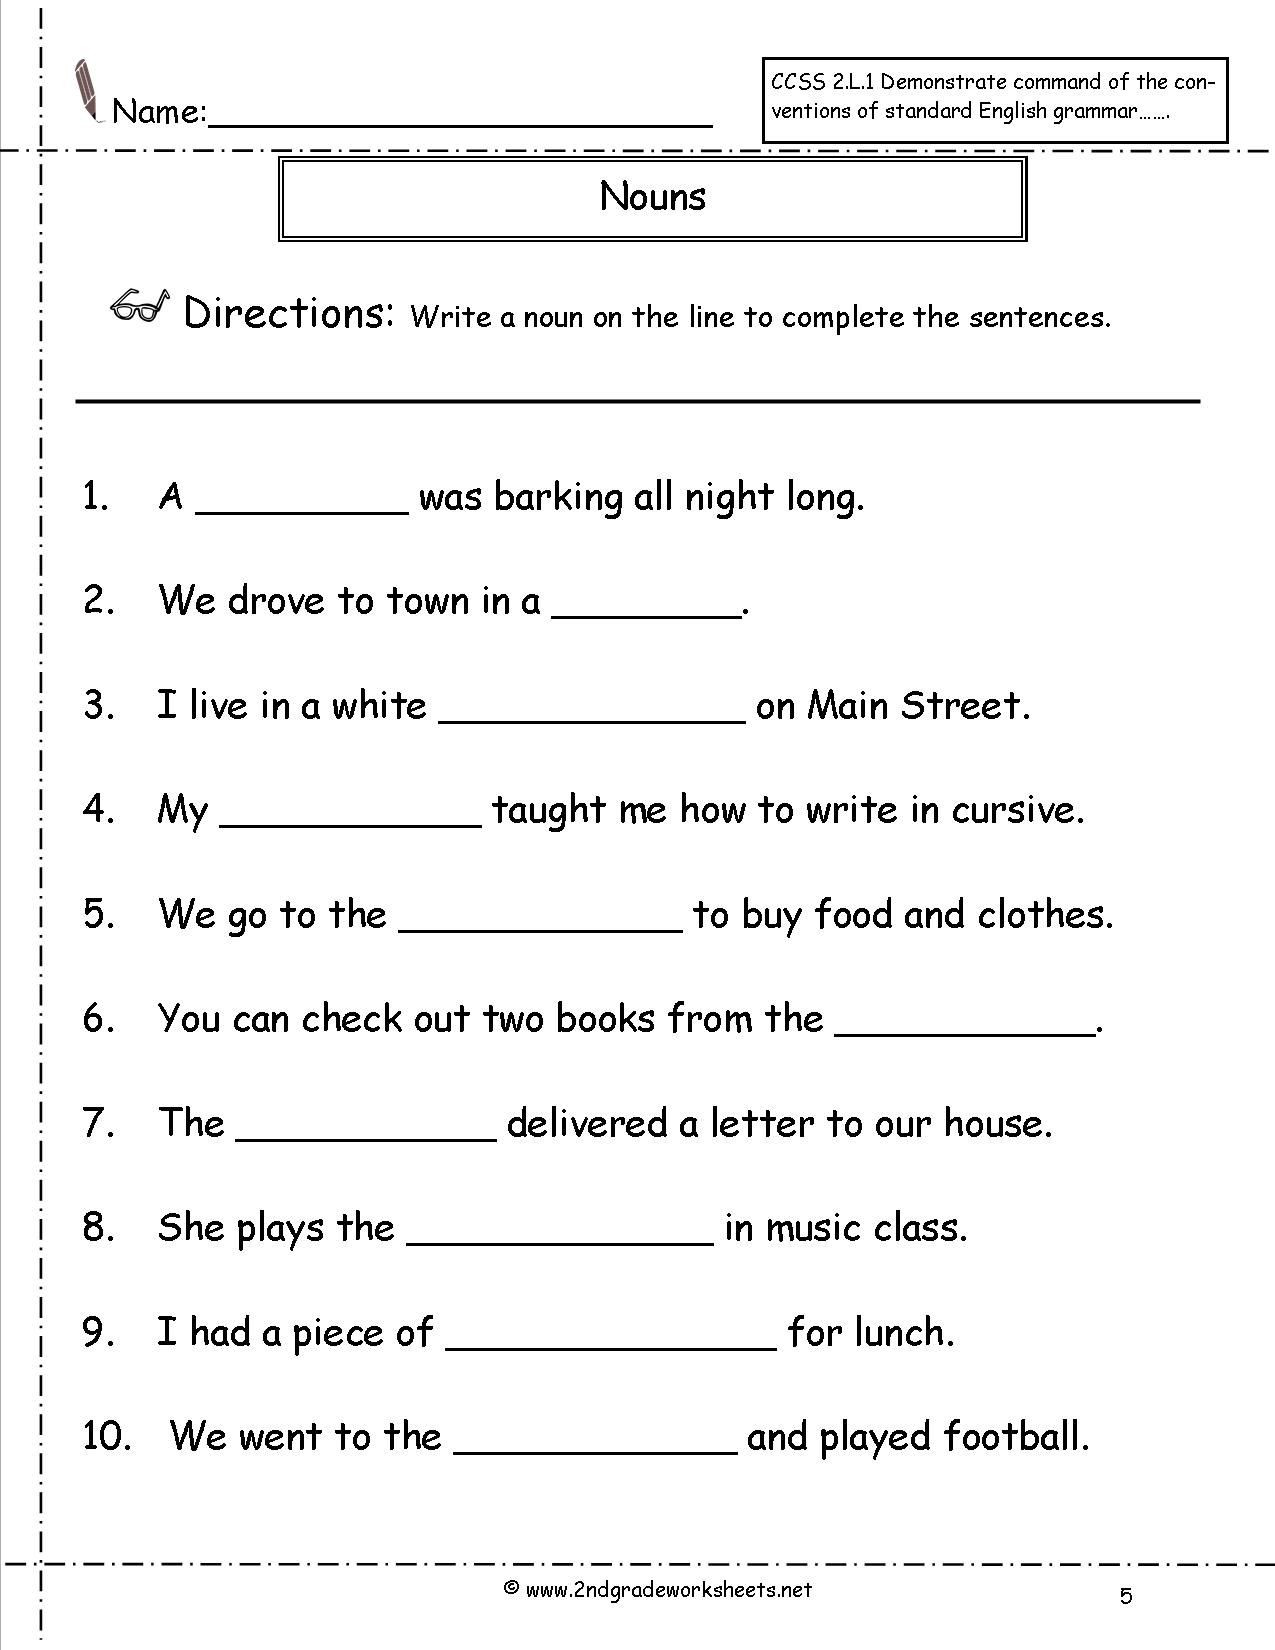 Possessive Nouns Worksheets 2nd Grade Noun Worksheets for Grade 1